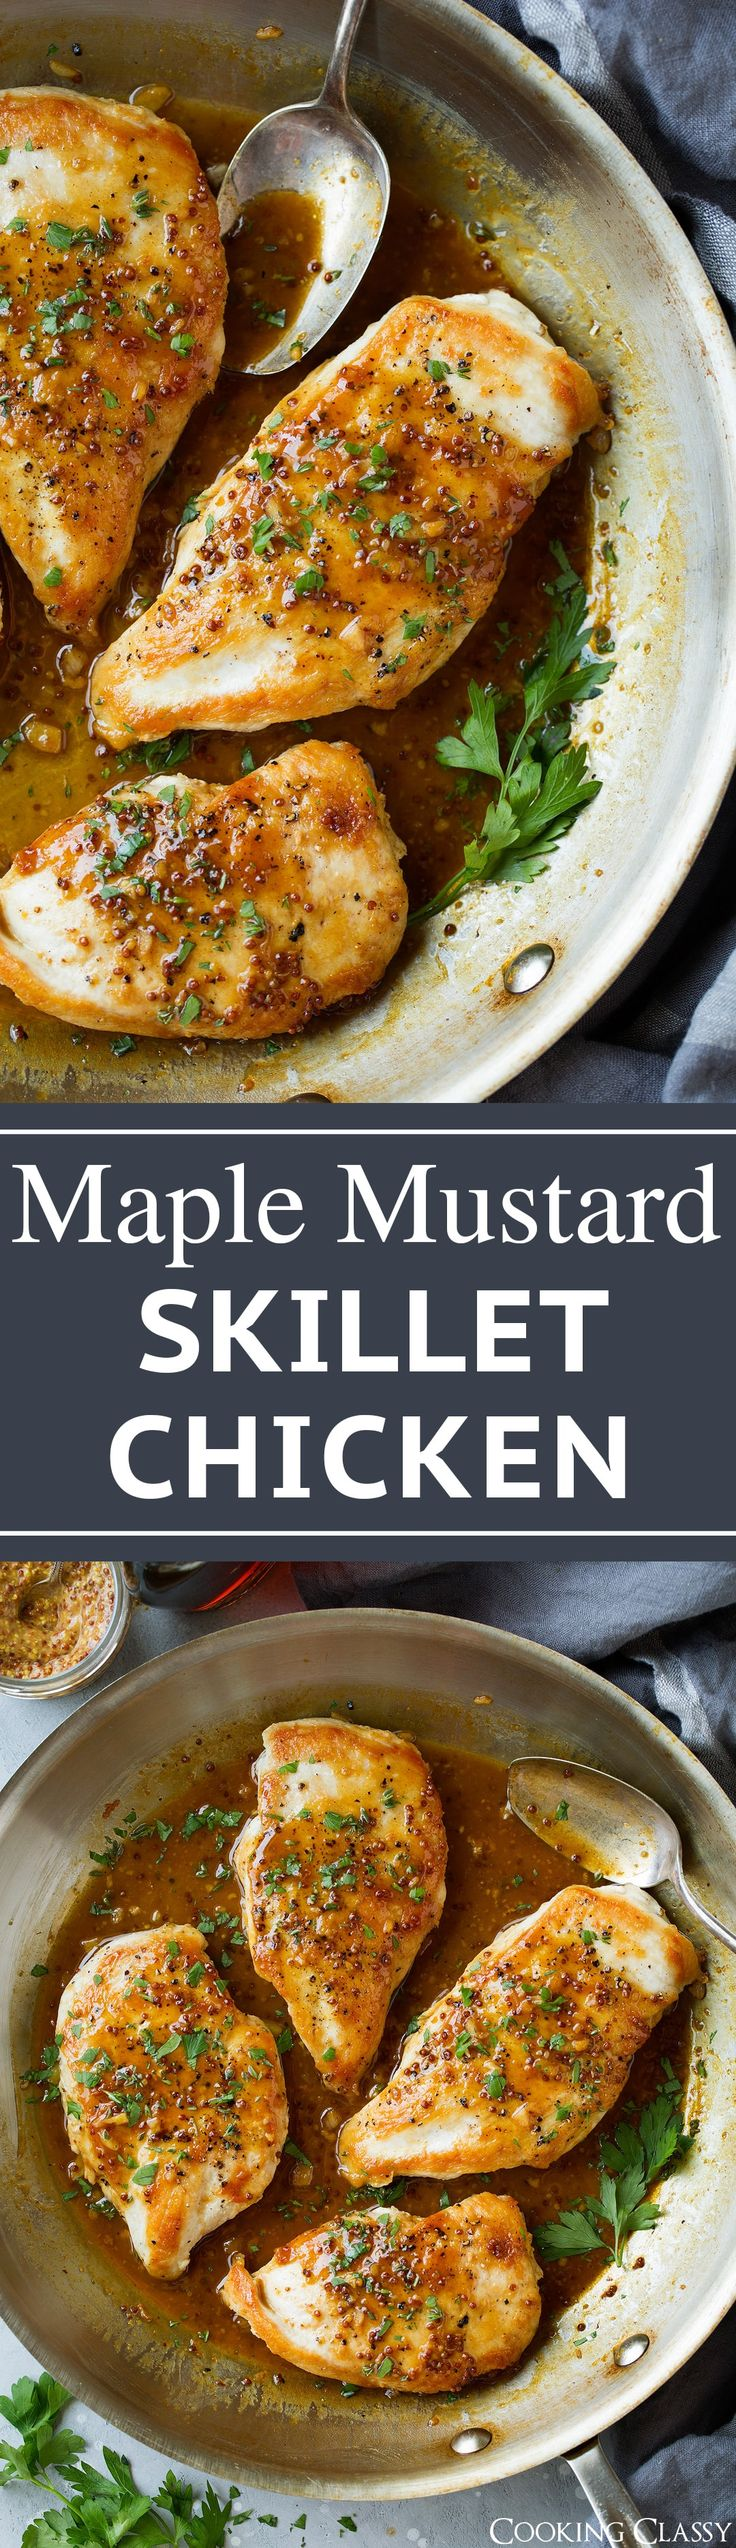 Maple-Mustard Skillet Chicken